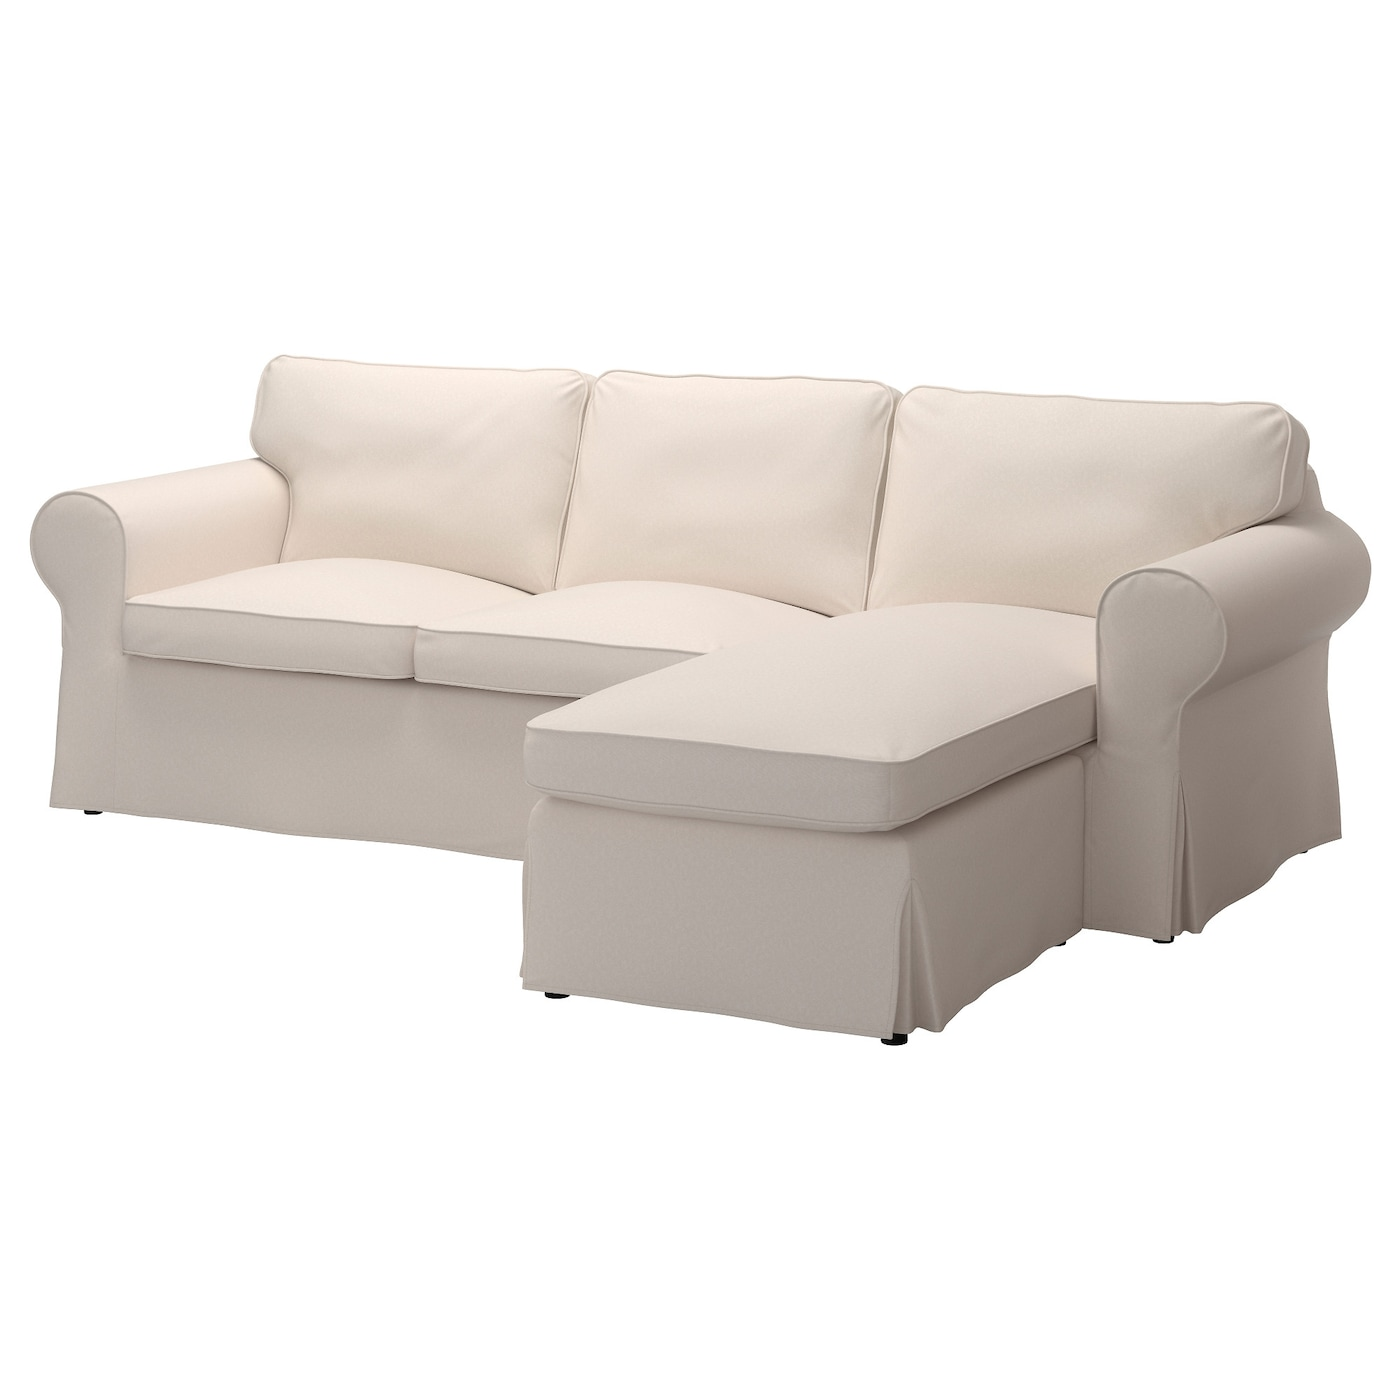 Ektorp two seat sofa and chaise longue lofallet beige ikea for Sofas con chaise longue